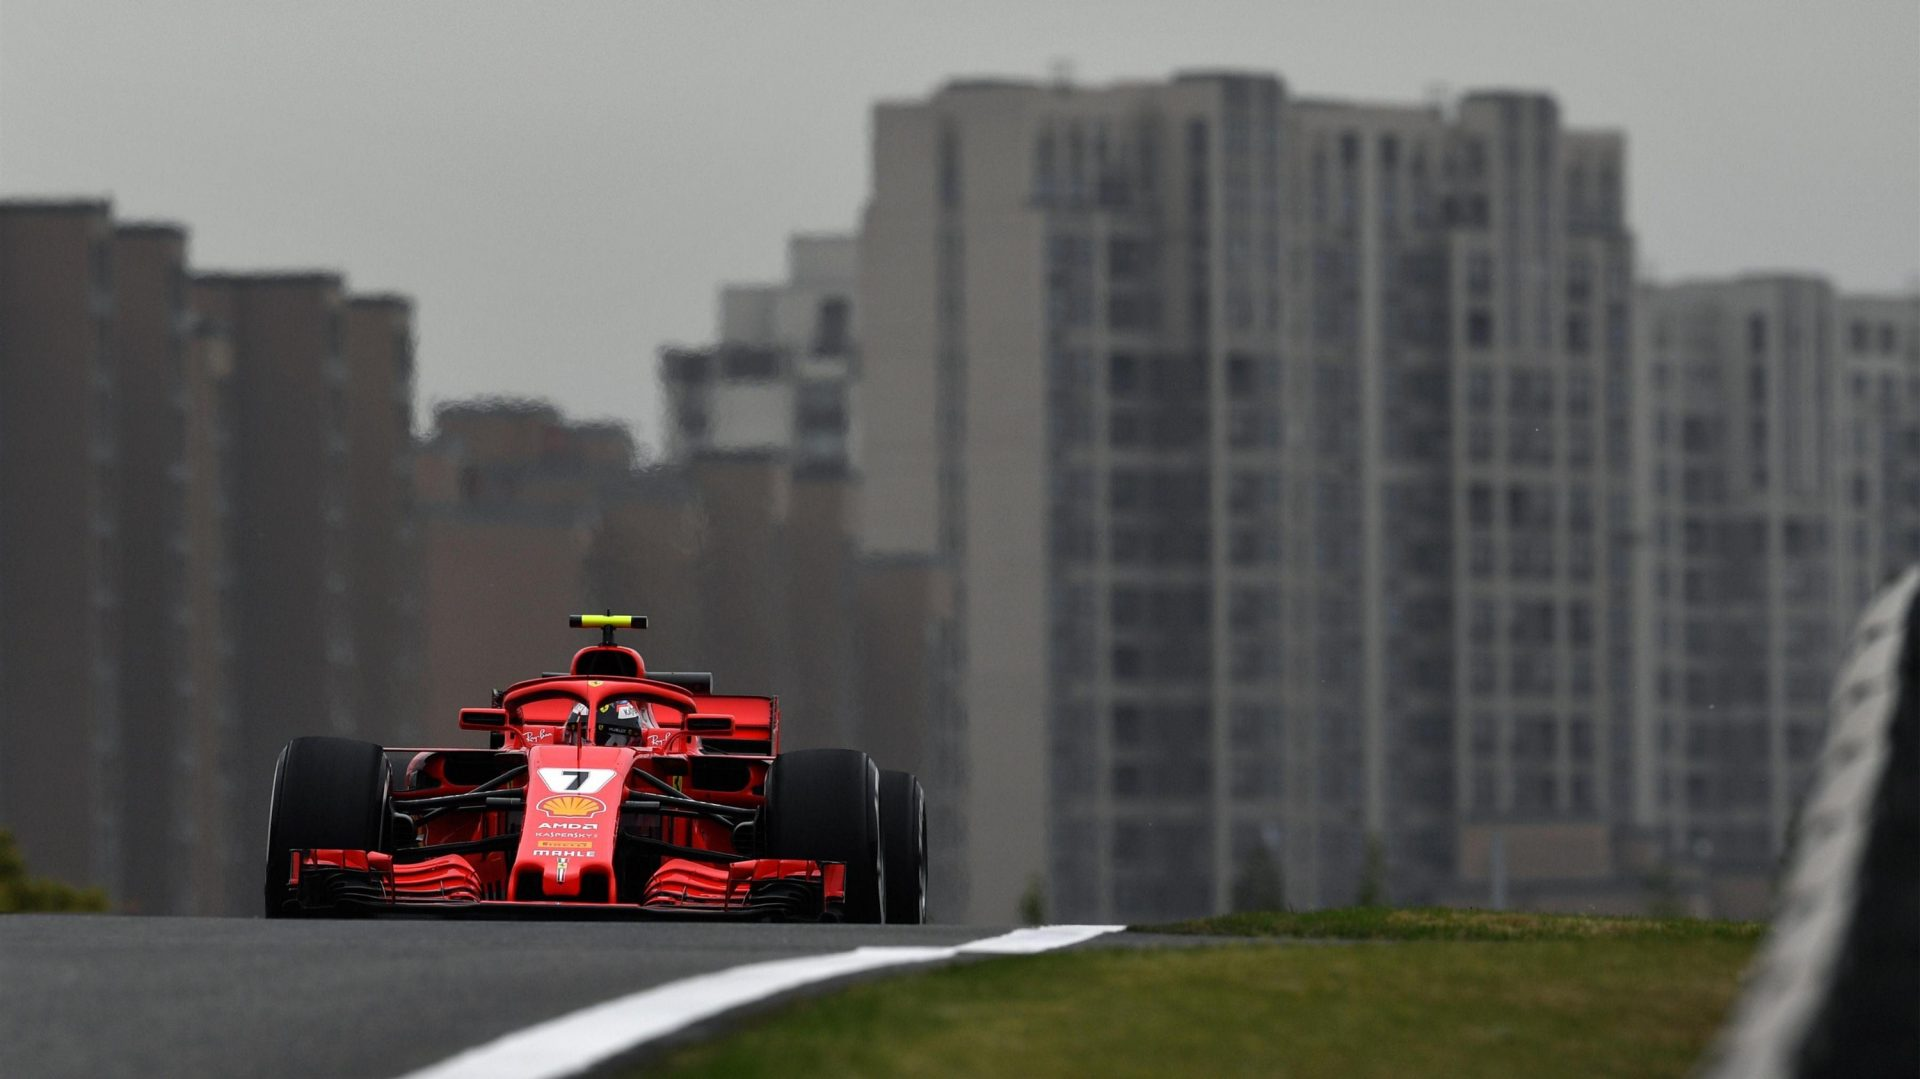 https://www.formula1.com/content/fom-website/en/latest/features/2018/4/gallery--the-best-images-from-friday-in-china/_jcr_content/featureContent/manual_gallery/image15.img.1920.medium.jpg/1523589068868.jpg